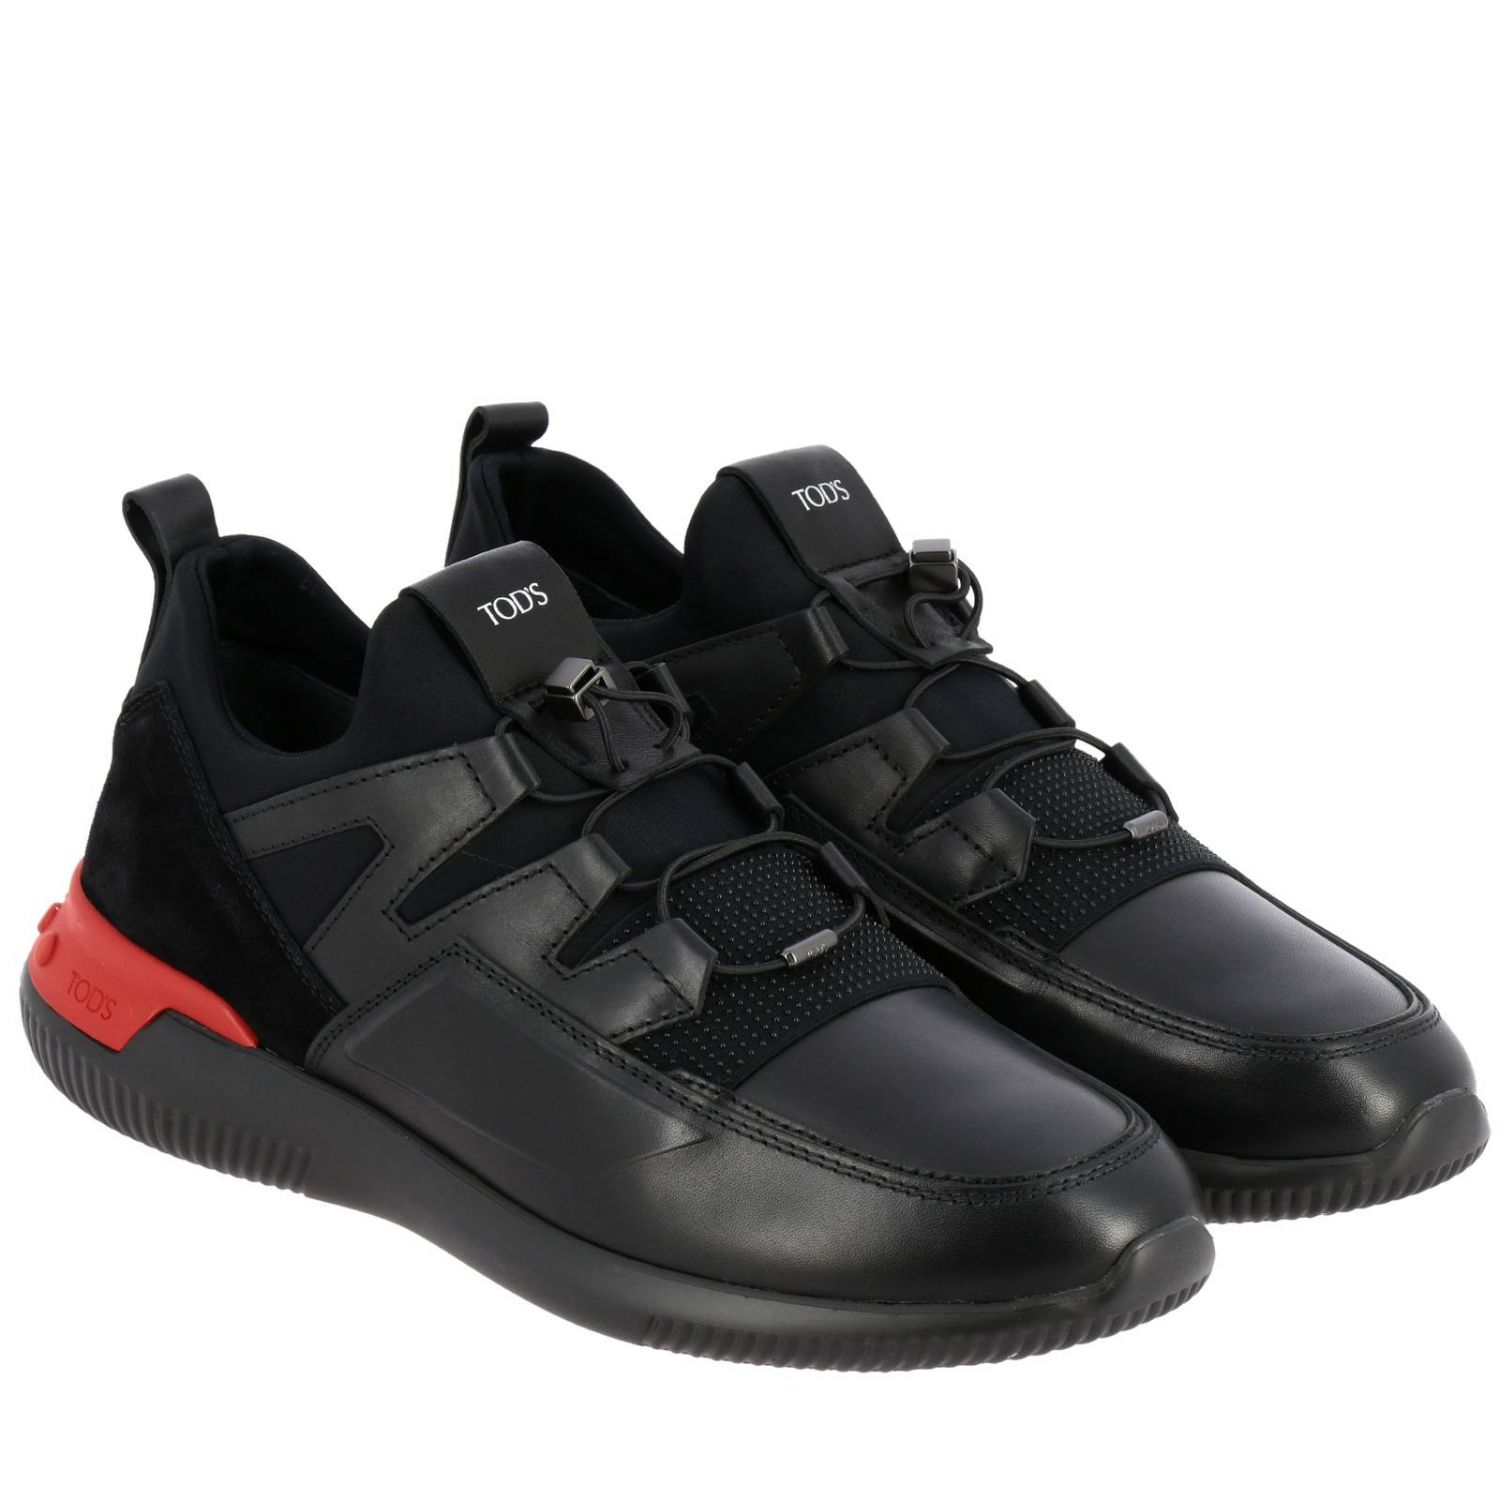 No code Active Sport Tod's sneakers in suede and neoprene leather with elastic laces black 2